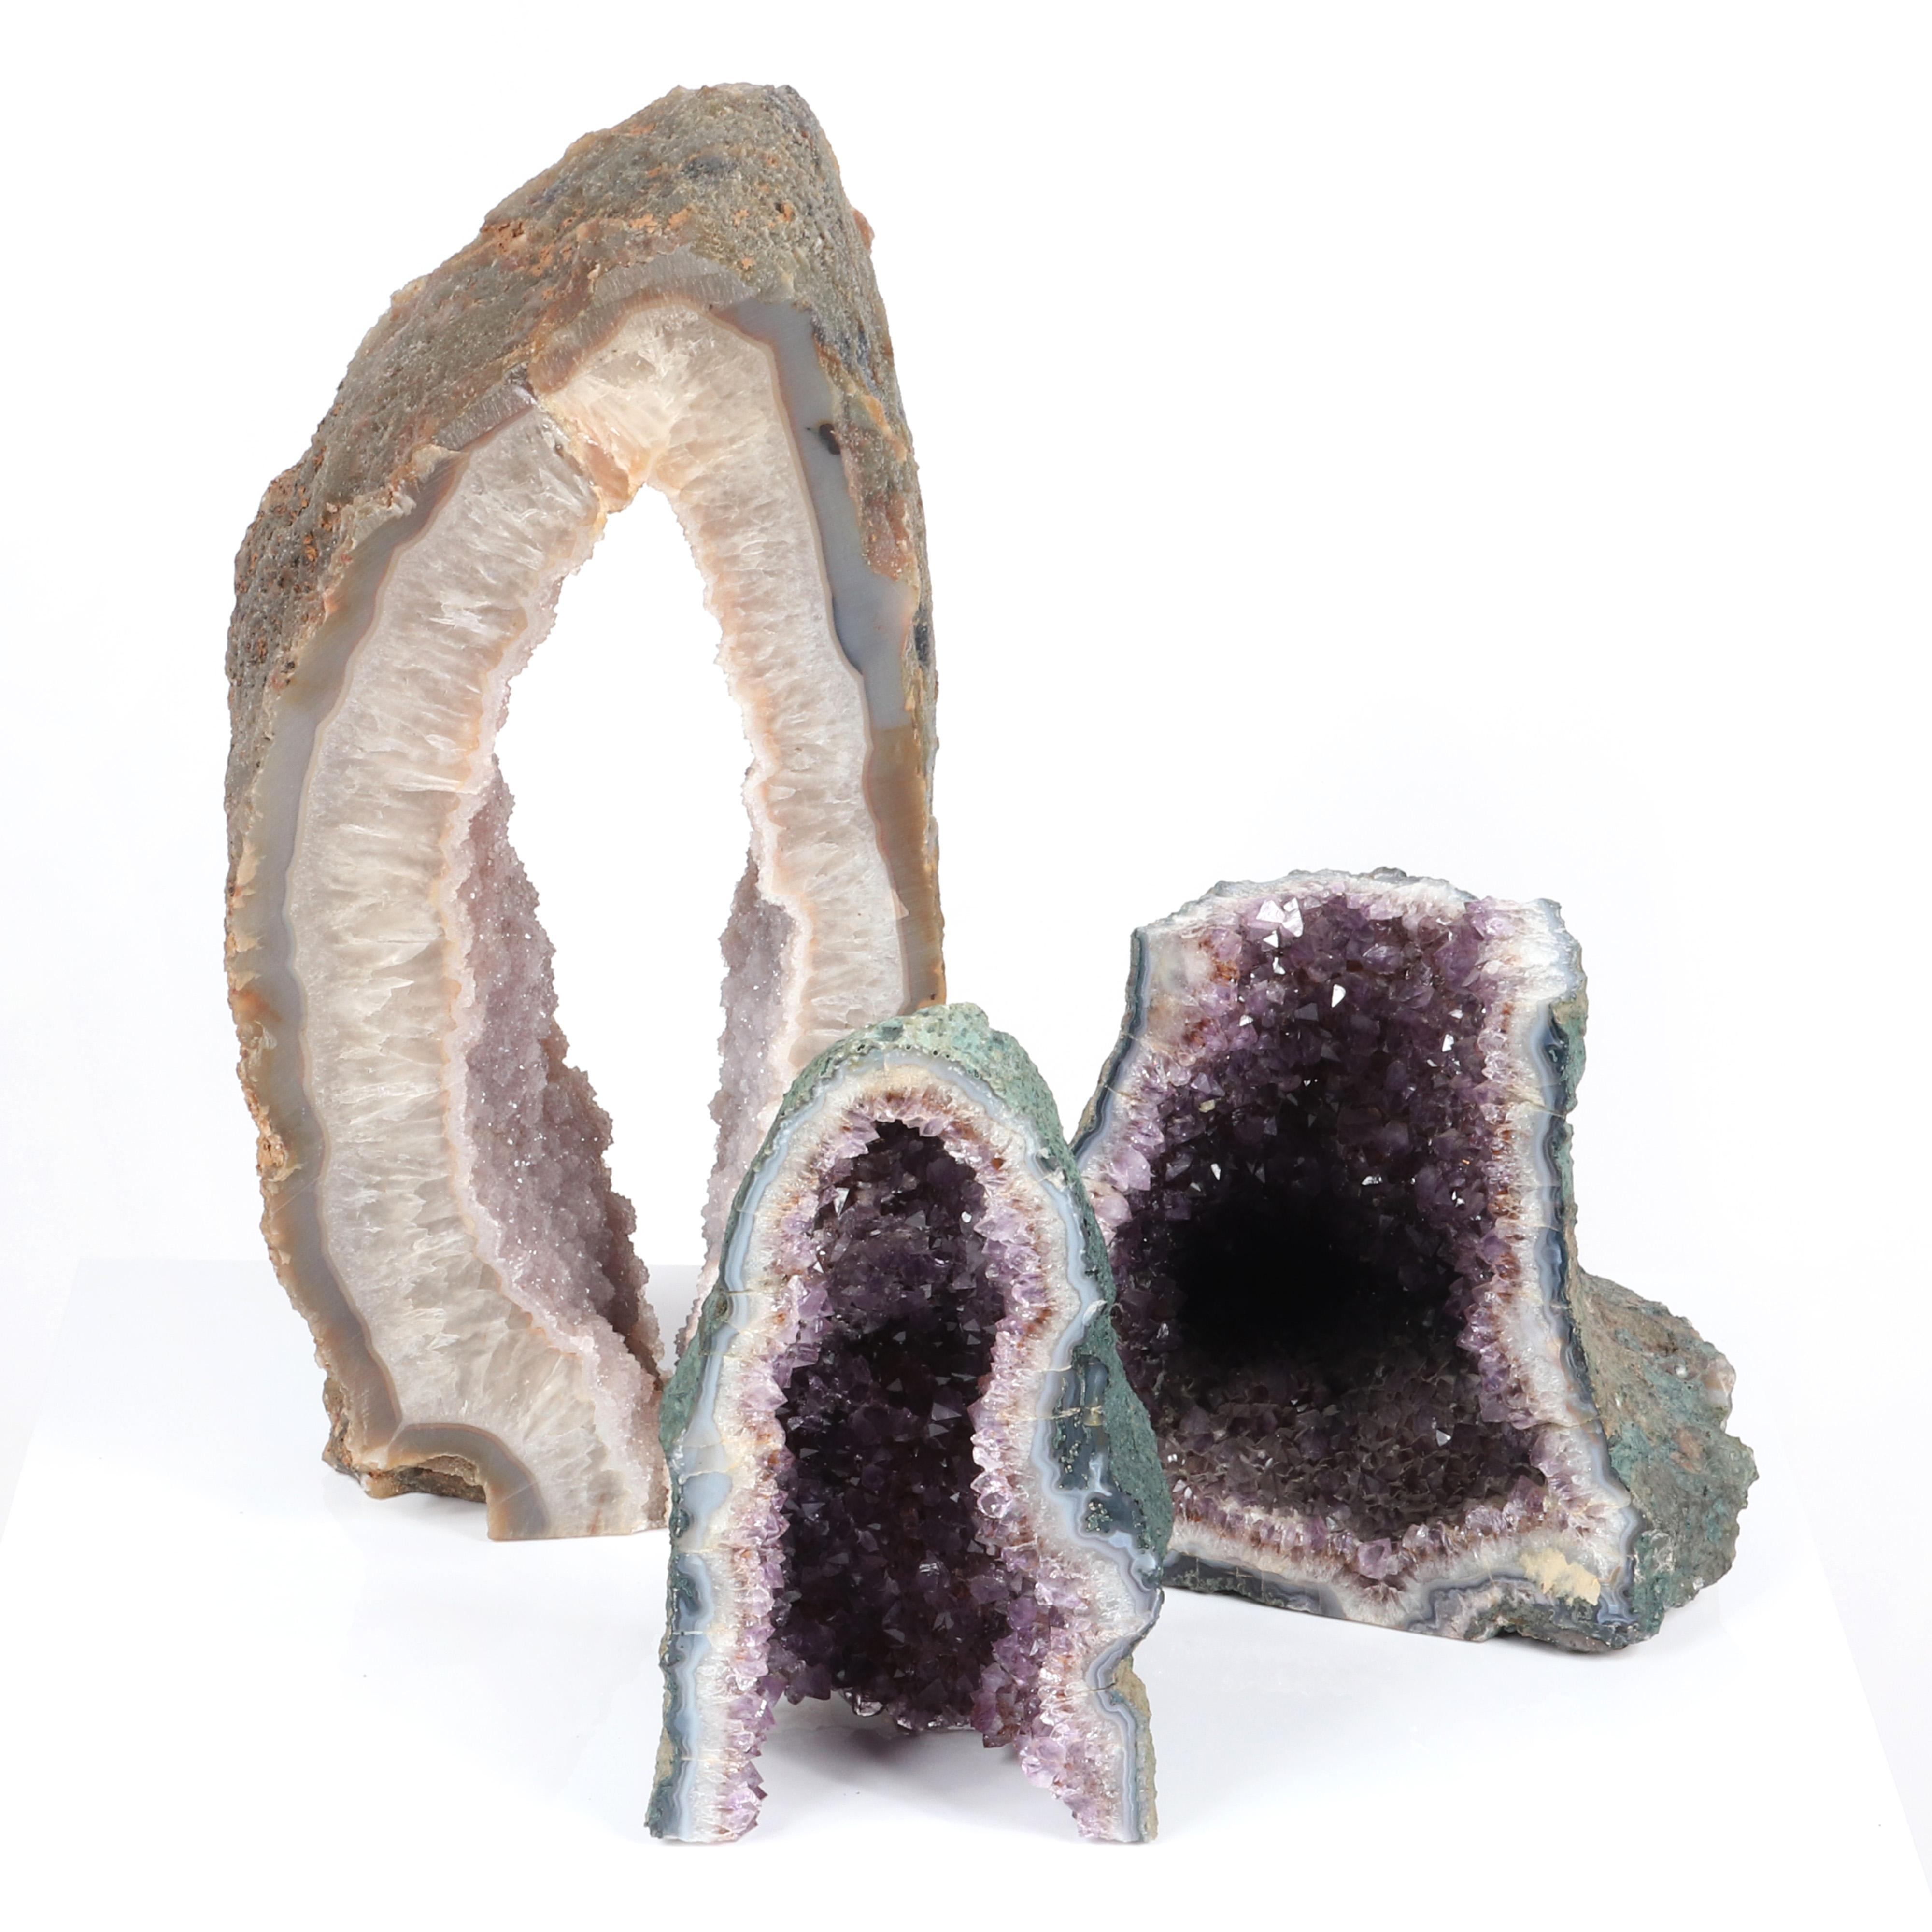 """Three natural rock crystal cathedral amethyst specimens. 18""""H x 9 1/2""""W (tallest)."""